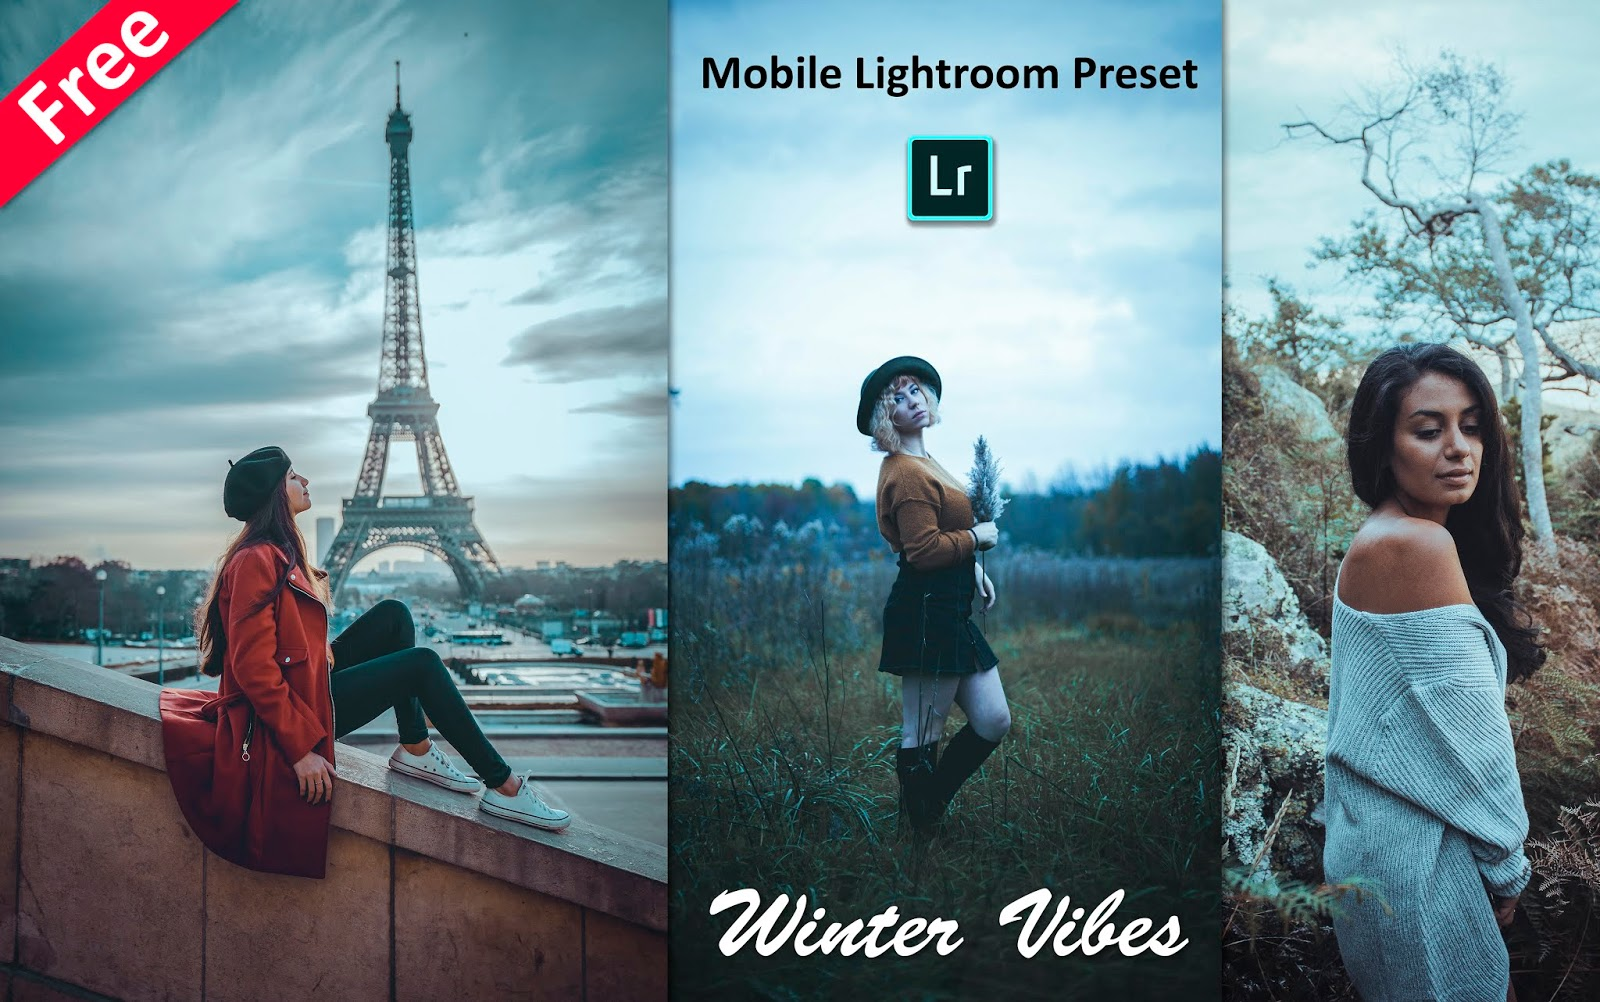 Download Winter Vibes Mobile Lightroom Preset | How to Edit Winter Cold Effect in Mobile Lightroom App